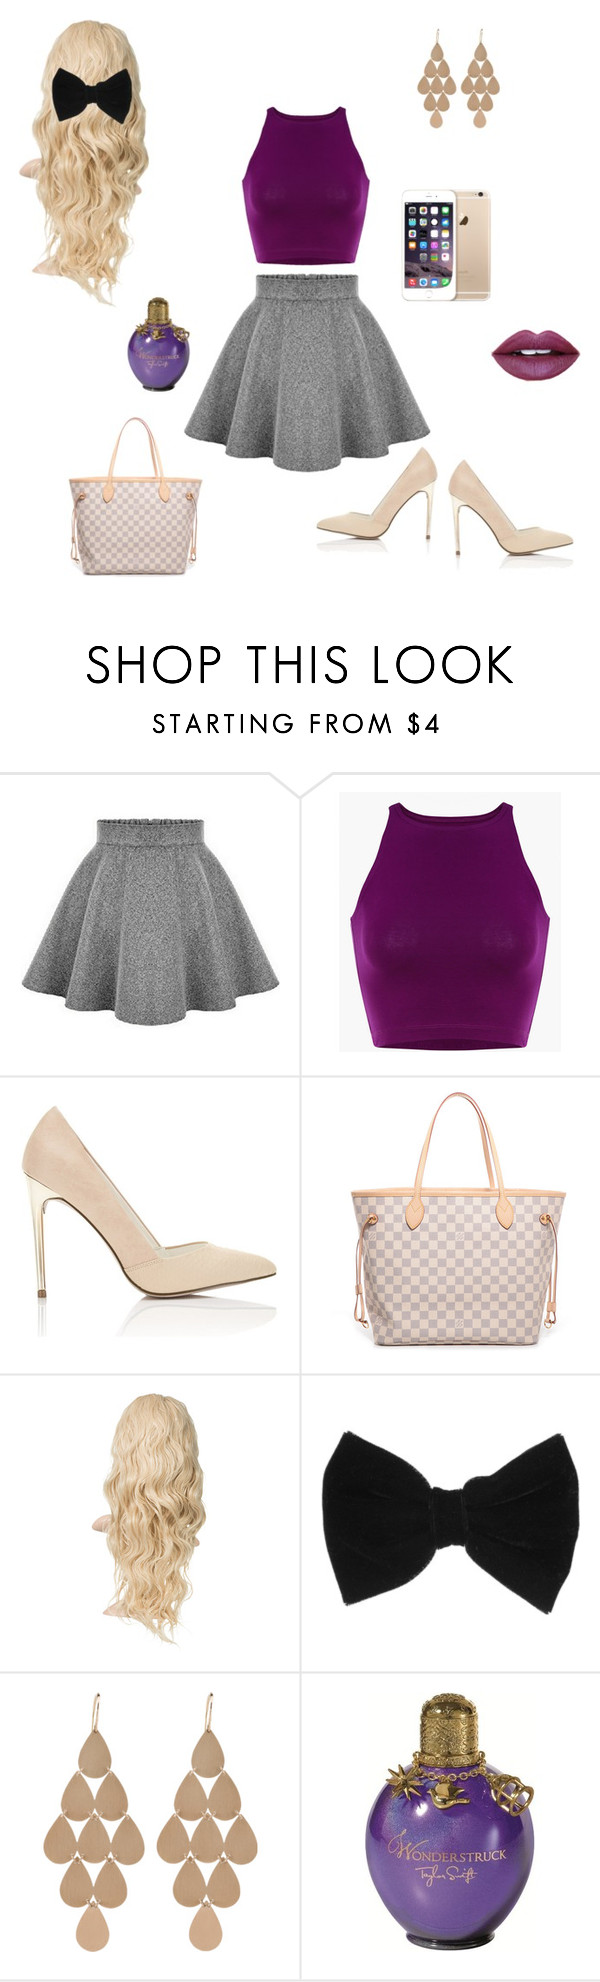 """""""purple and gold✨"""" by xxokanchan ❤ liked on Polyvore featuring Miss Selfridge, Louis Vuitton, claire's, Irene Neuwirth, Fiebiger, women's clothing, women, female, woman and misses"""